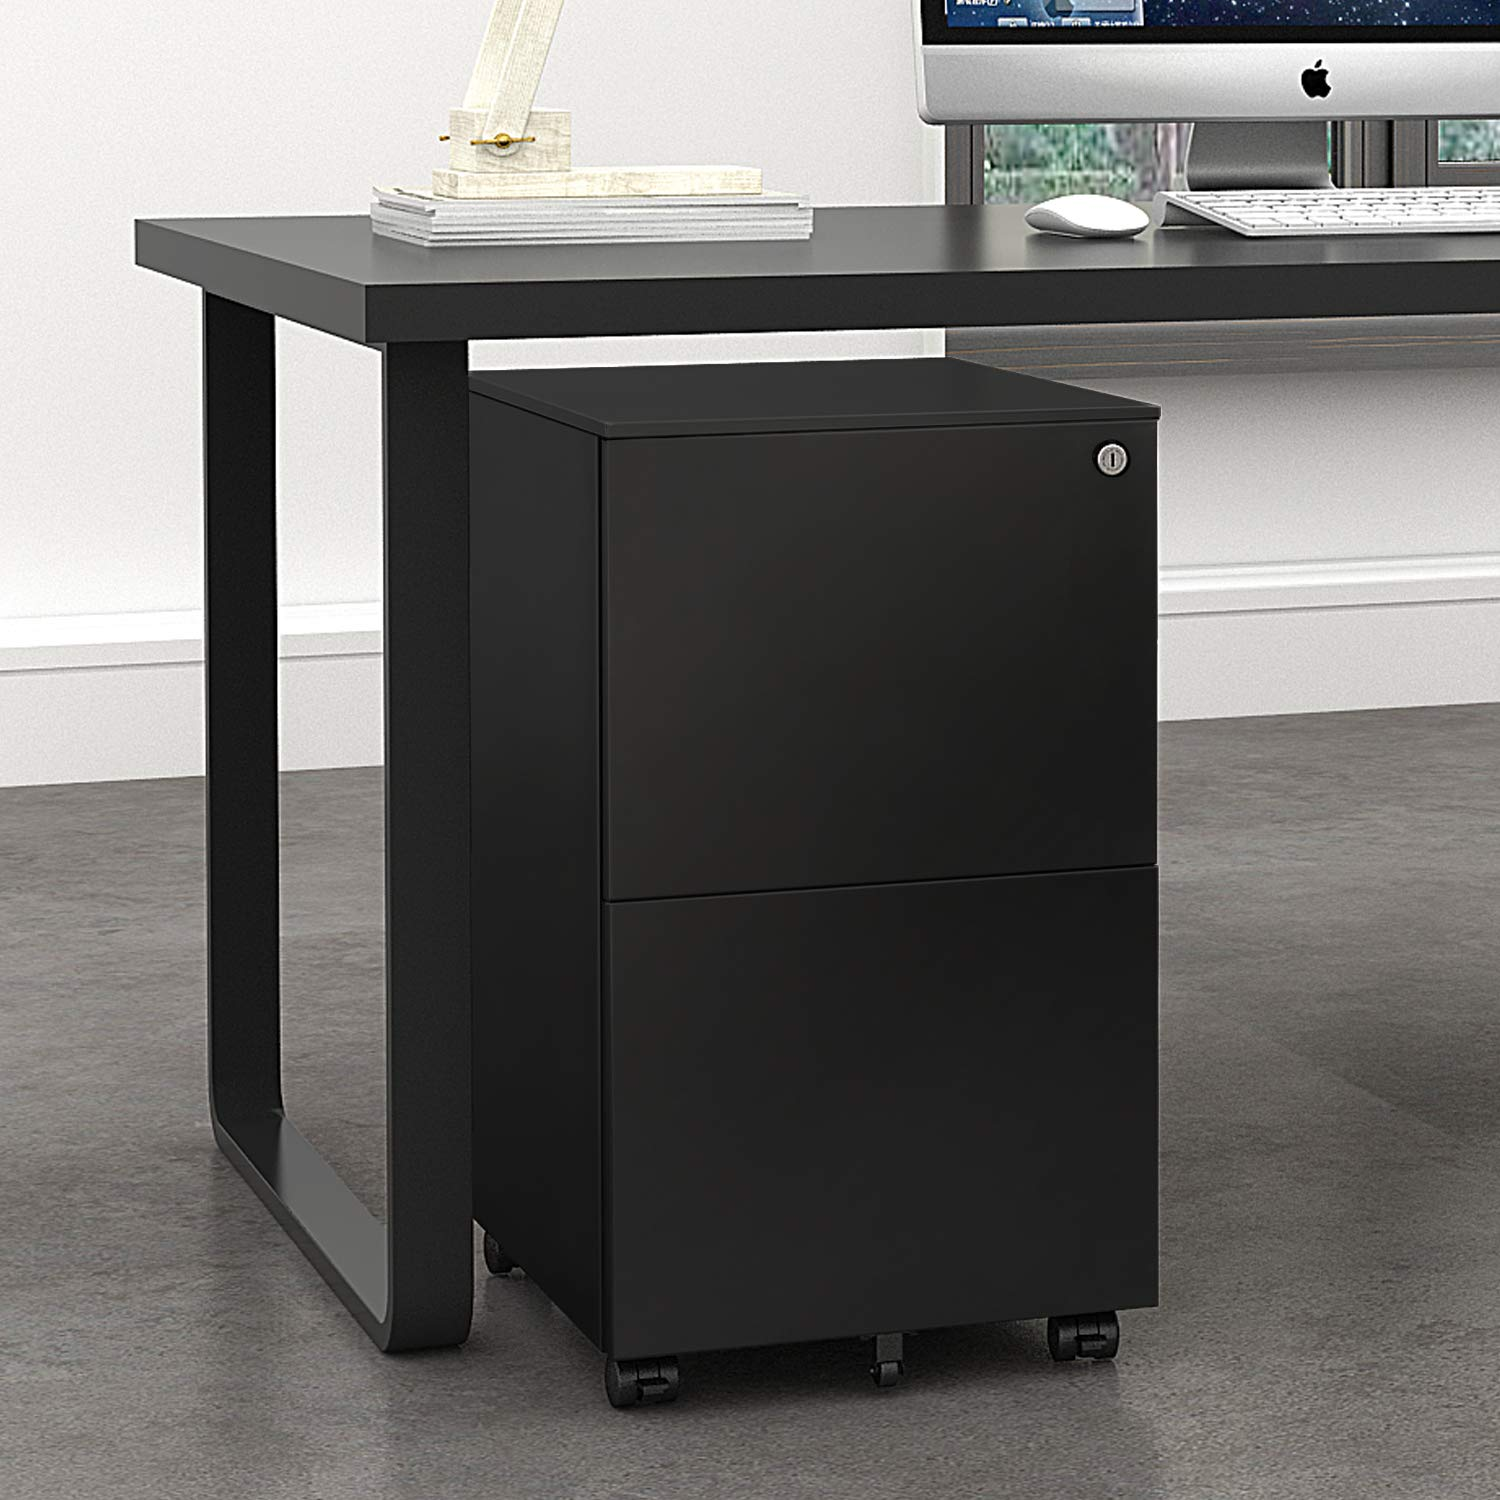 DEVAISE Locking File Cabinet, 2 Drawer Rolling Metal Filing Cabinet, Fully Assembled Except Wheels, Black by DEVAISE (Image #2)